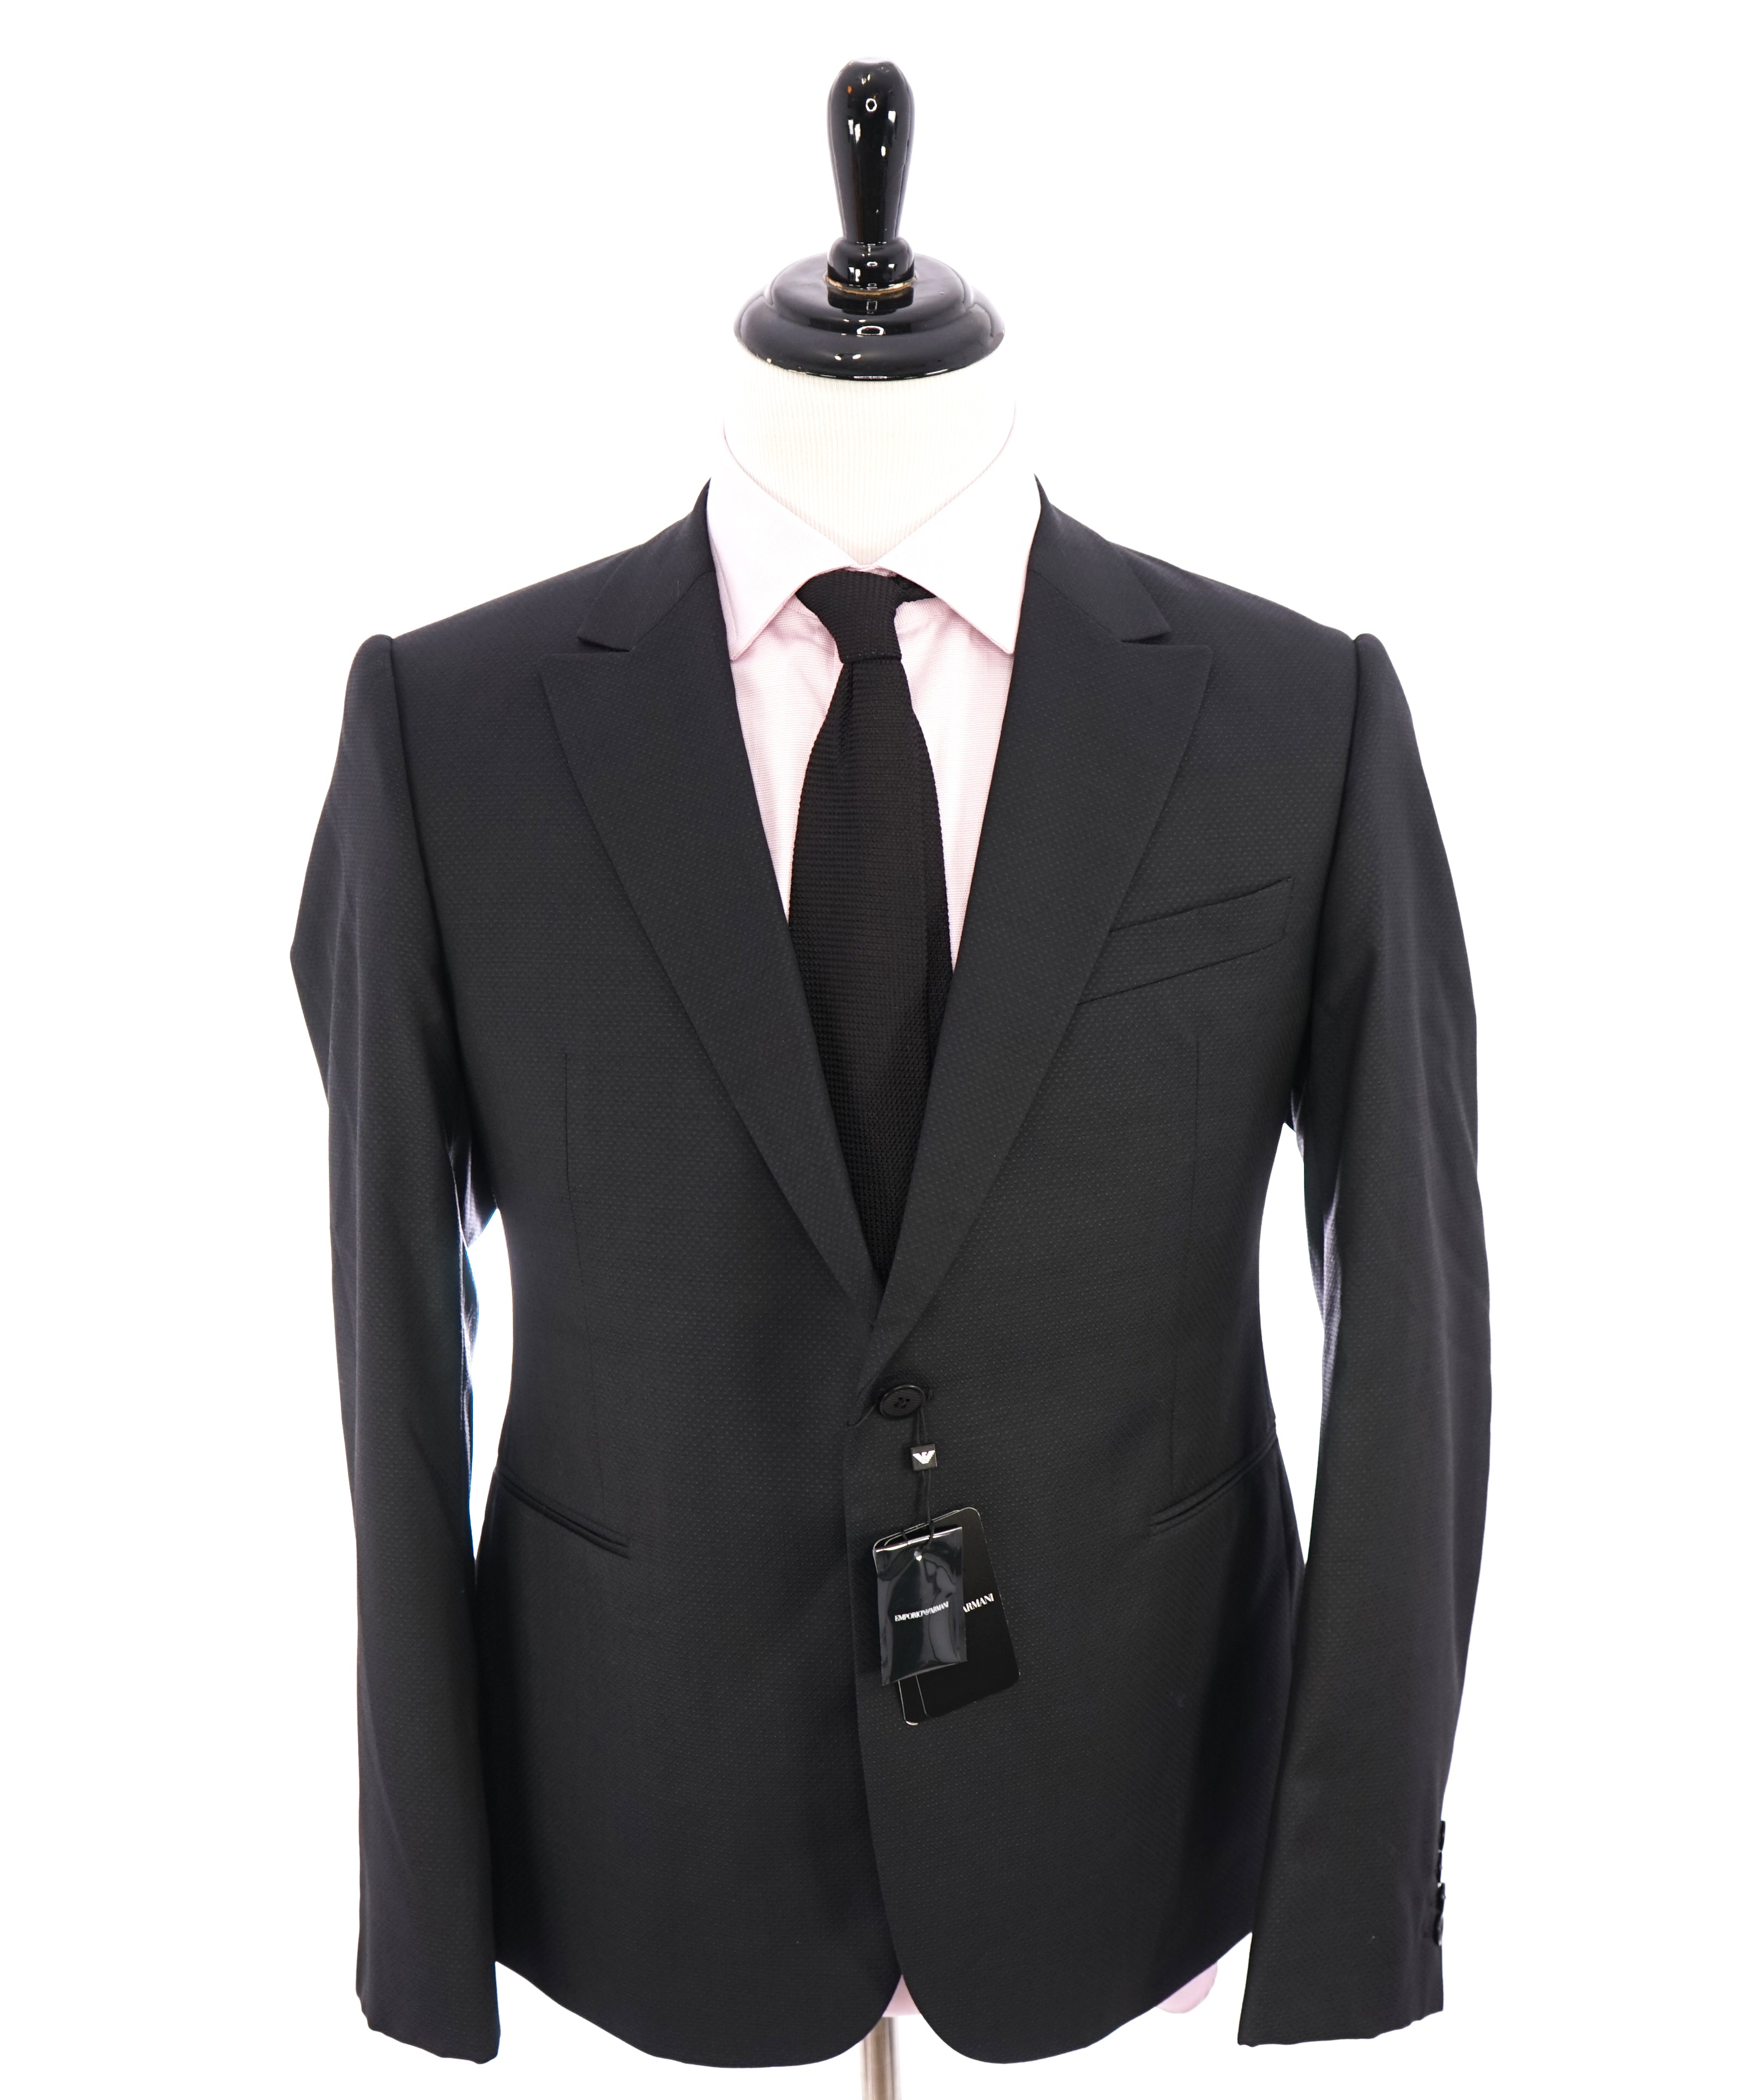 "EMPORIO ARMANI -  ""M LINE"" Drop 8 Made In Italy Geometric 1-Button Suit - 42S"